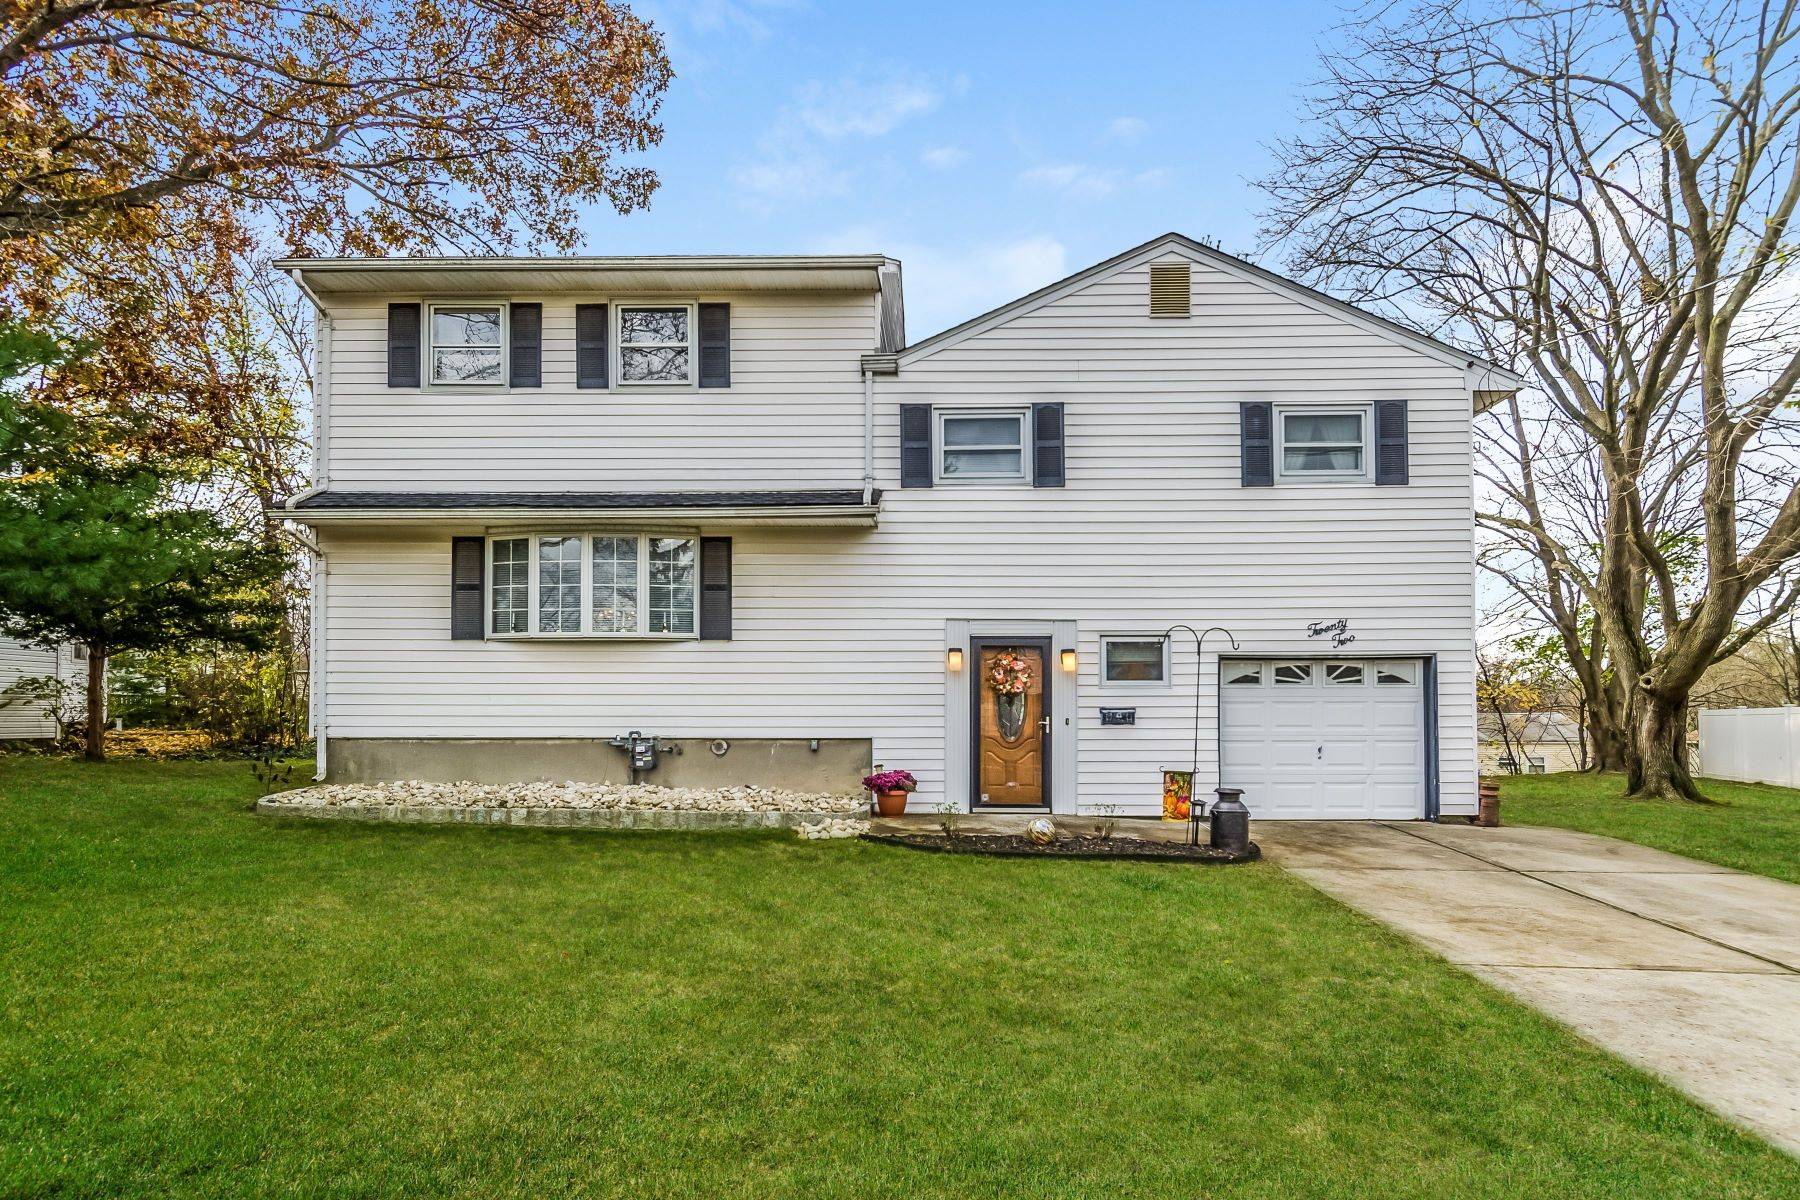 Single Family Homes for Sale at South River 4 Bedroom with In-Law/Work Suite 22 Ridge Road, South River, New Jersey 08882 United States